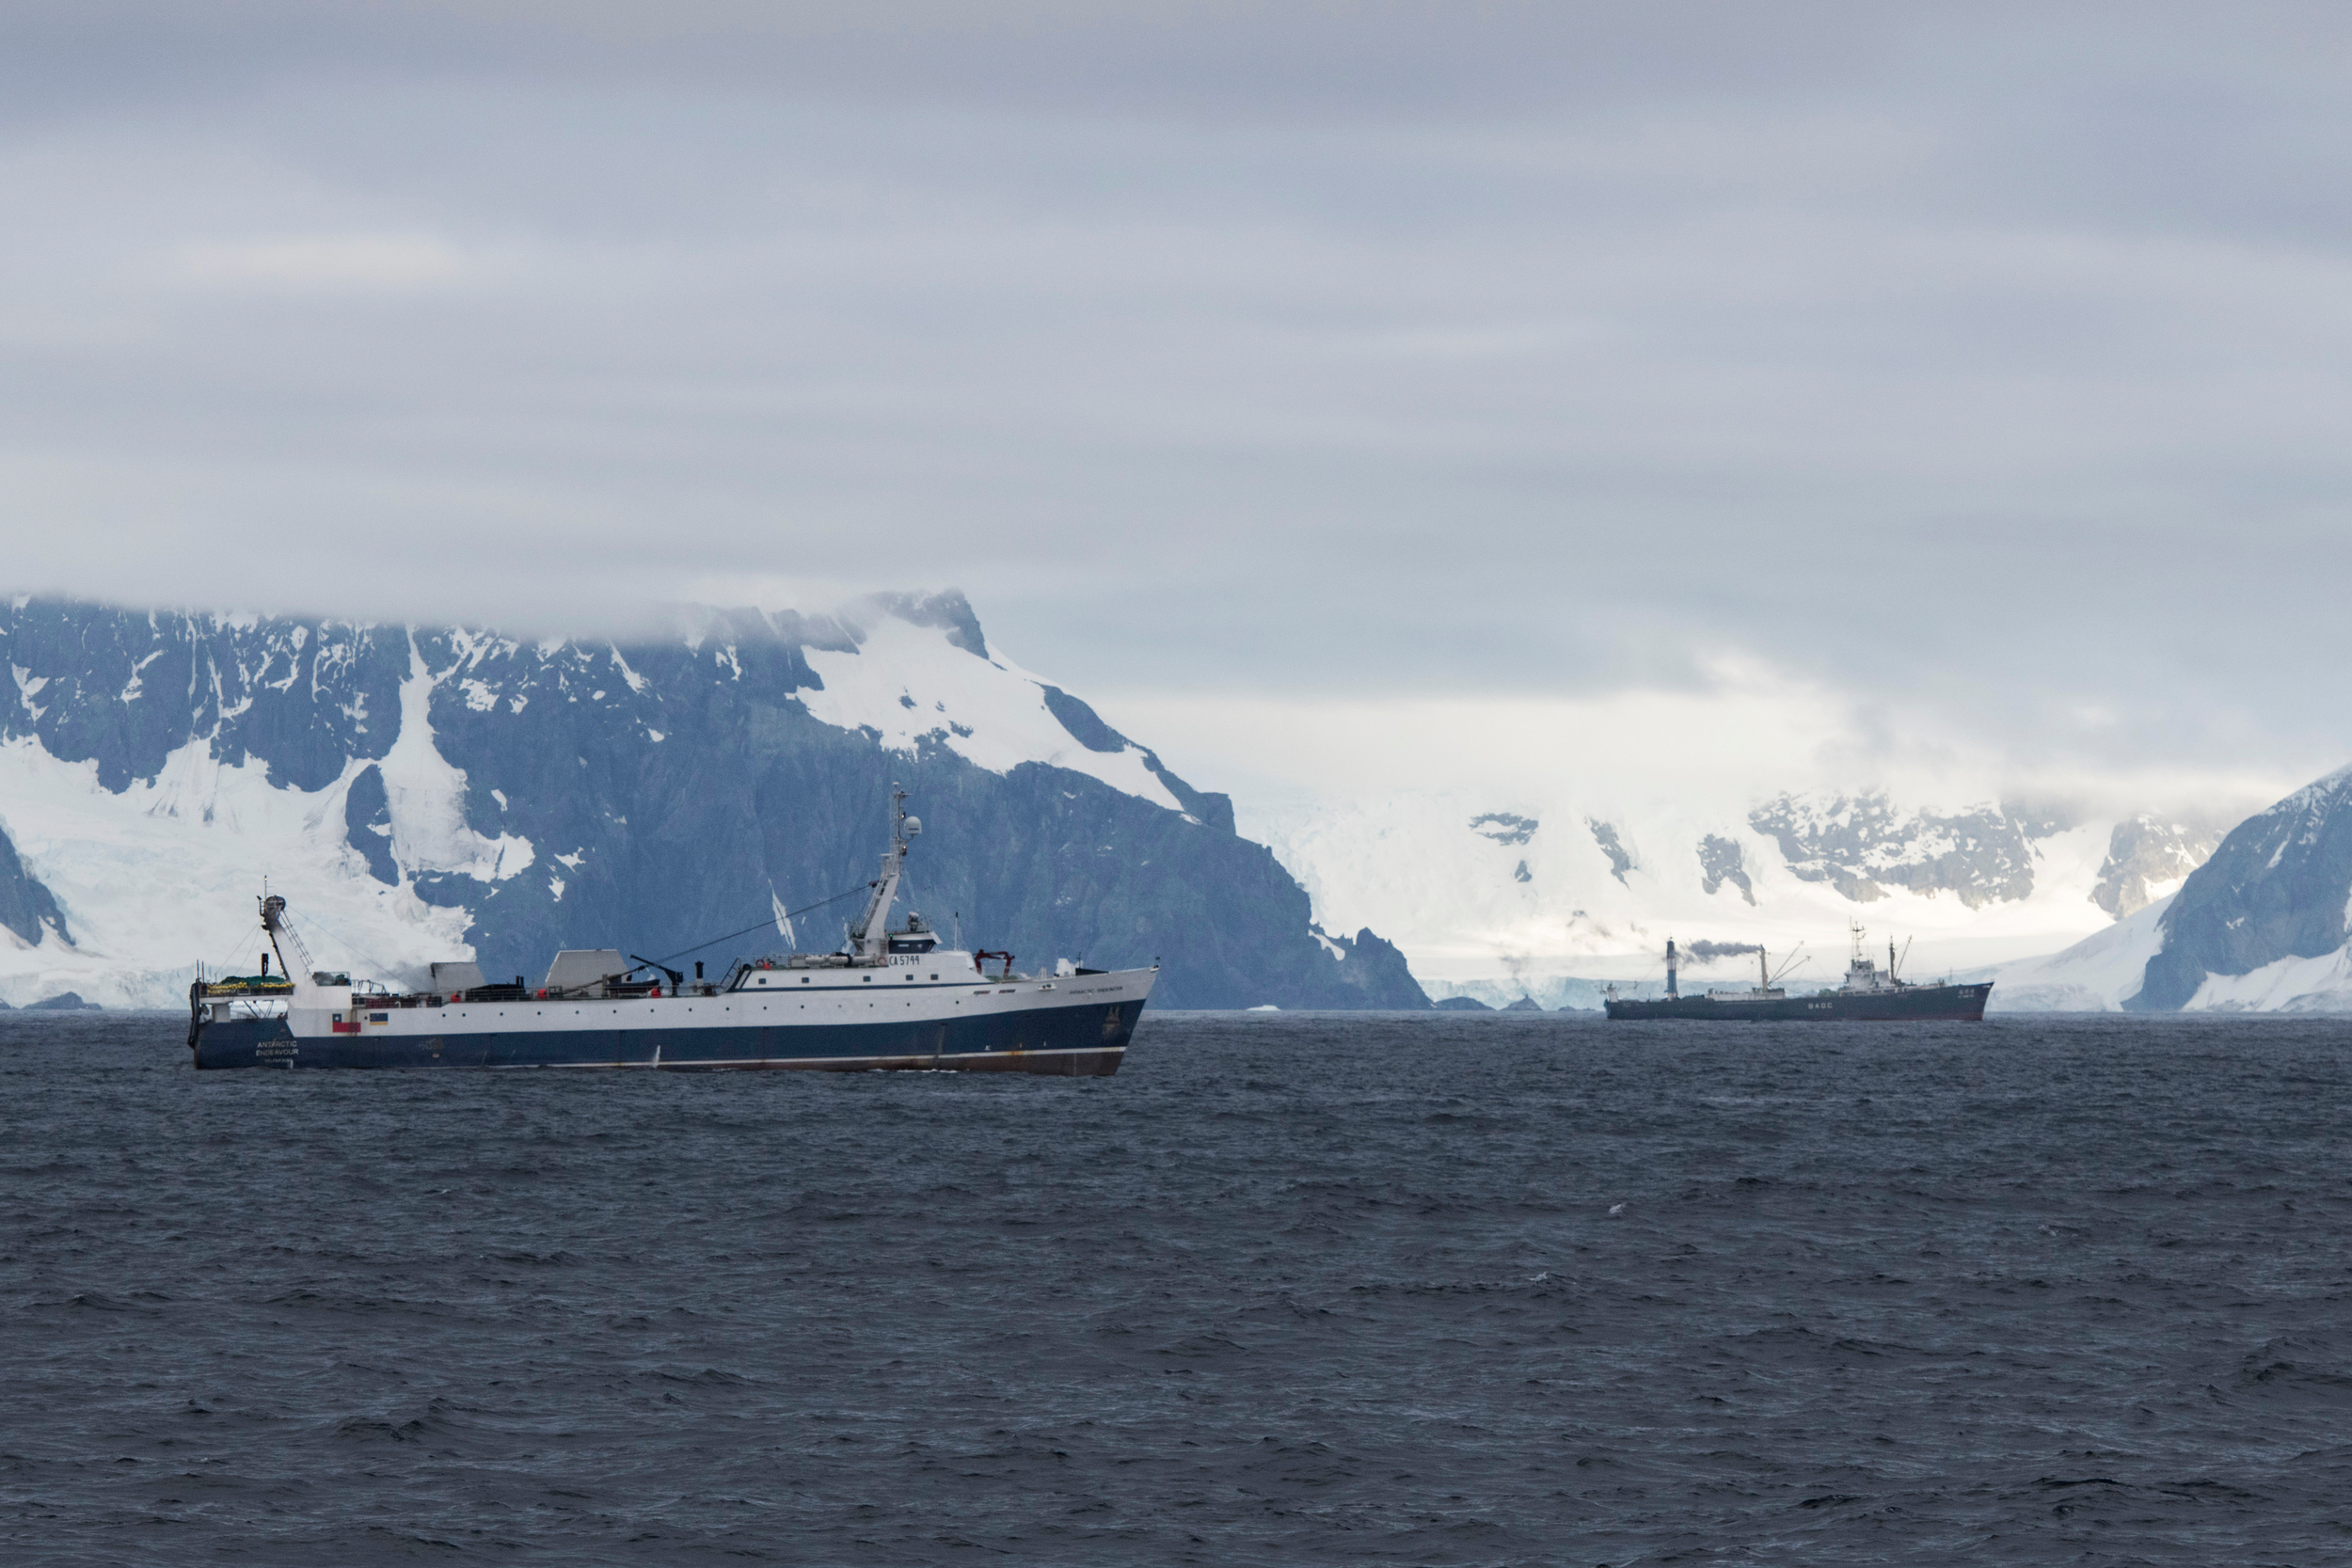 February 27th, 2018. Antarctic Peninsula, Greenpeace expedition to promote the formation of an Antarctic protected area with the MY Arctic Sunrise.Krill fishing vessels in the vicinity of Trinity Island.Photo by Daniel Beltrá for Greenpeace